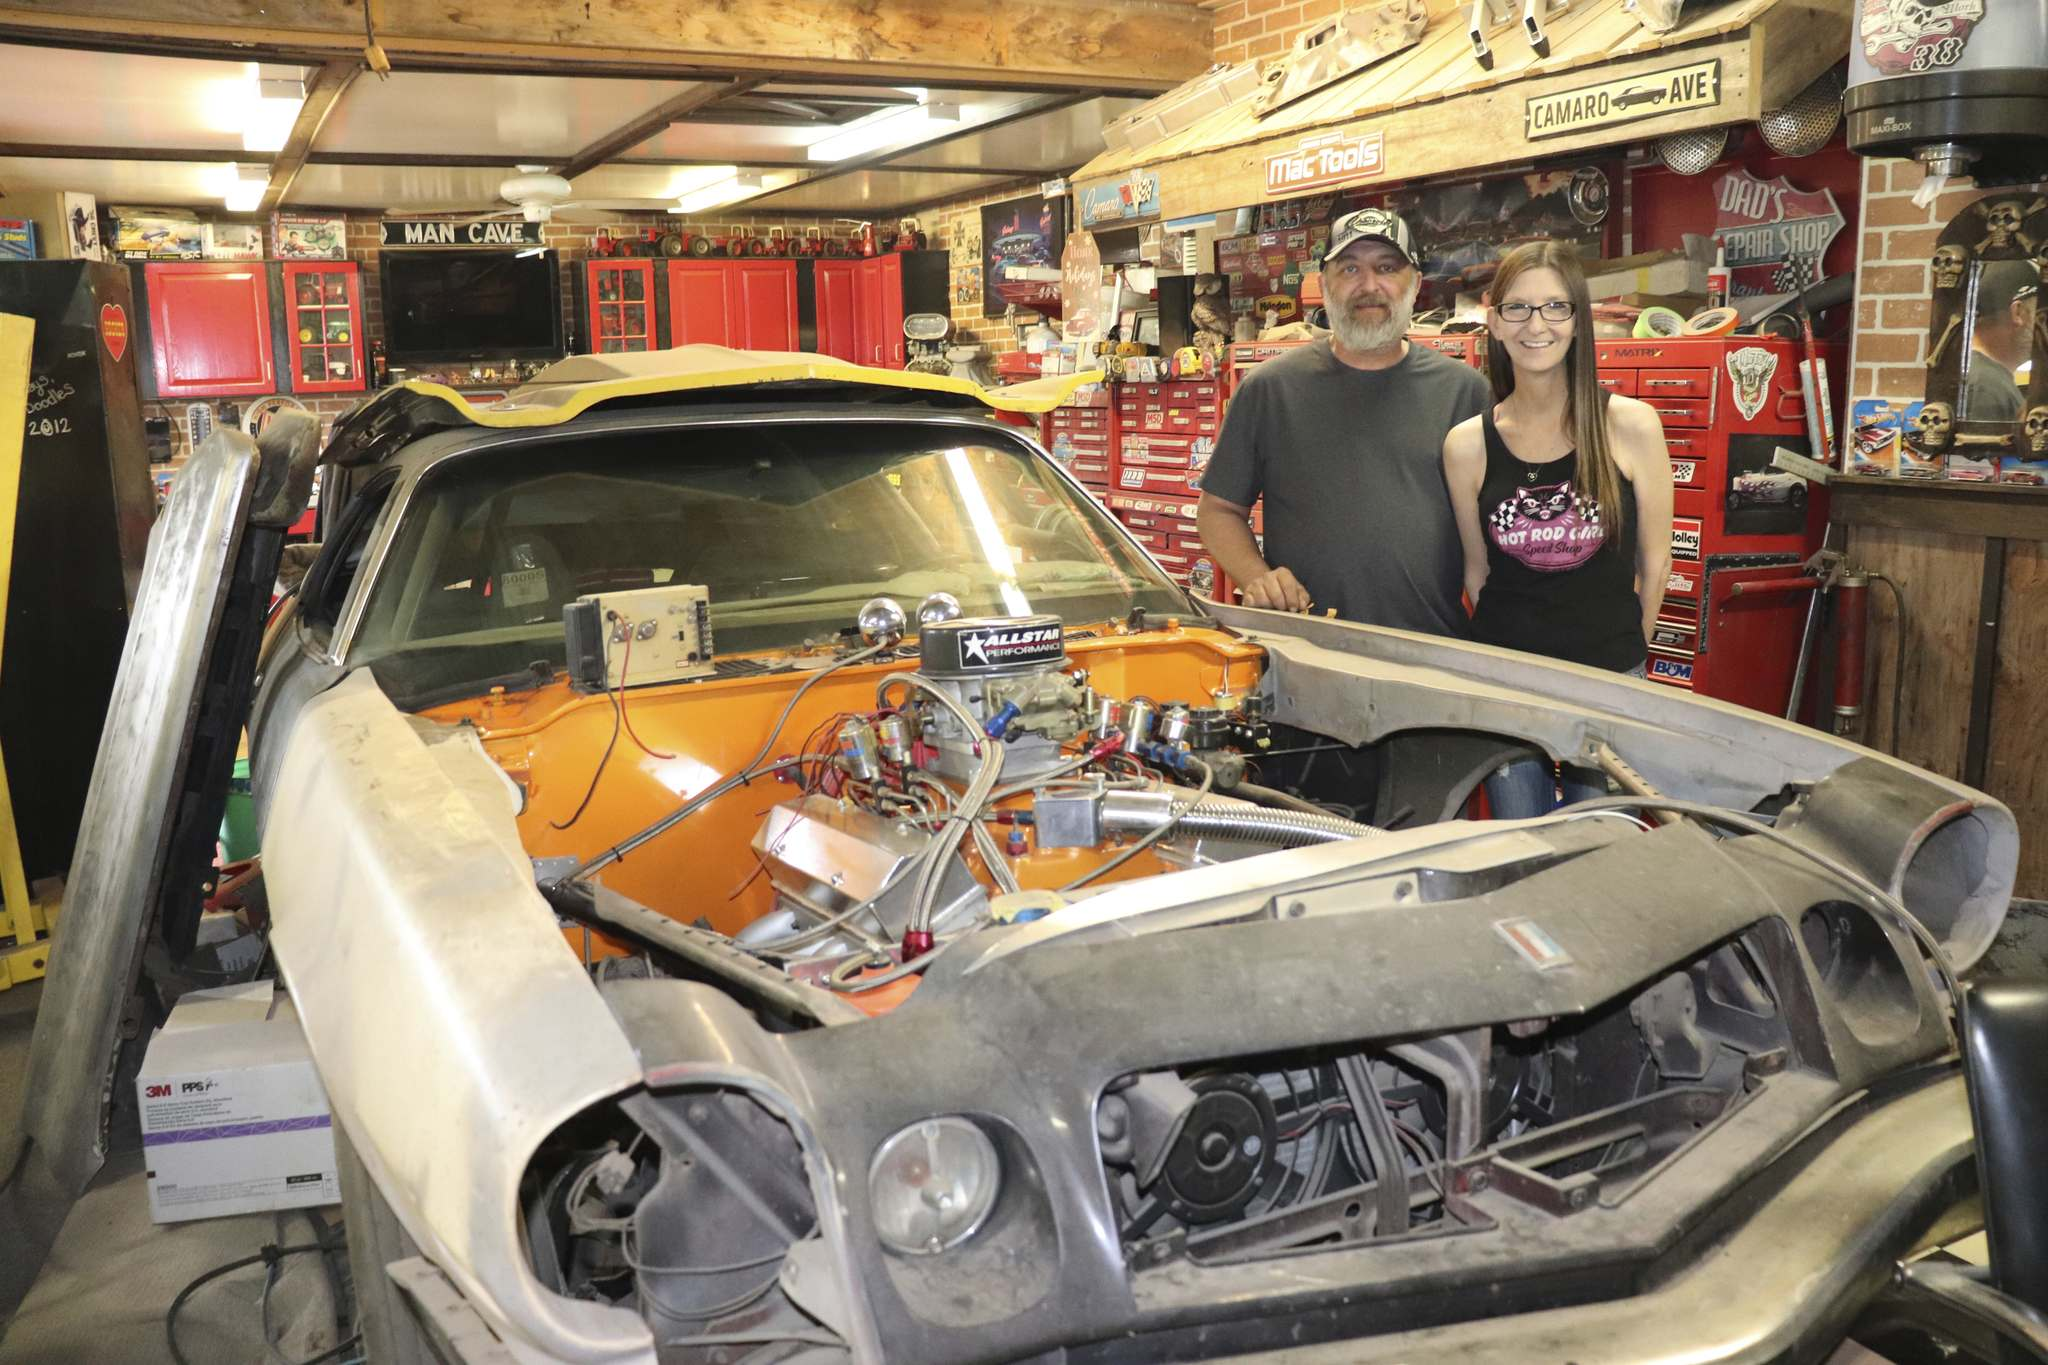 Kevin Suppes and his wife Jenifer pose for a photo next to a 1975 Chevrolet Camaro on Tuesday evening inside their garage in Cottonwoods. Suppes told the Sun that he has been working on this vehicle for around a decade and still hopes to turn it into a bona fide race car this summer. (Kyle Darbyson/The Brandon Sun)</p></p>